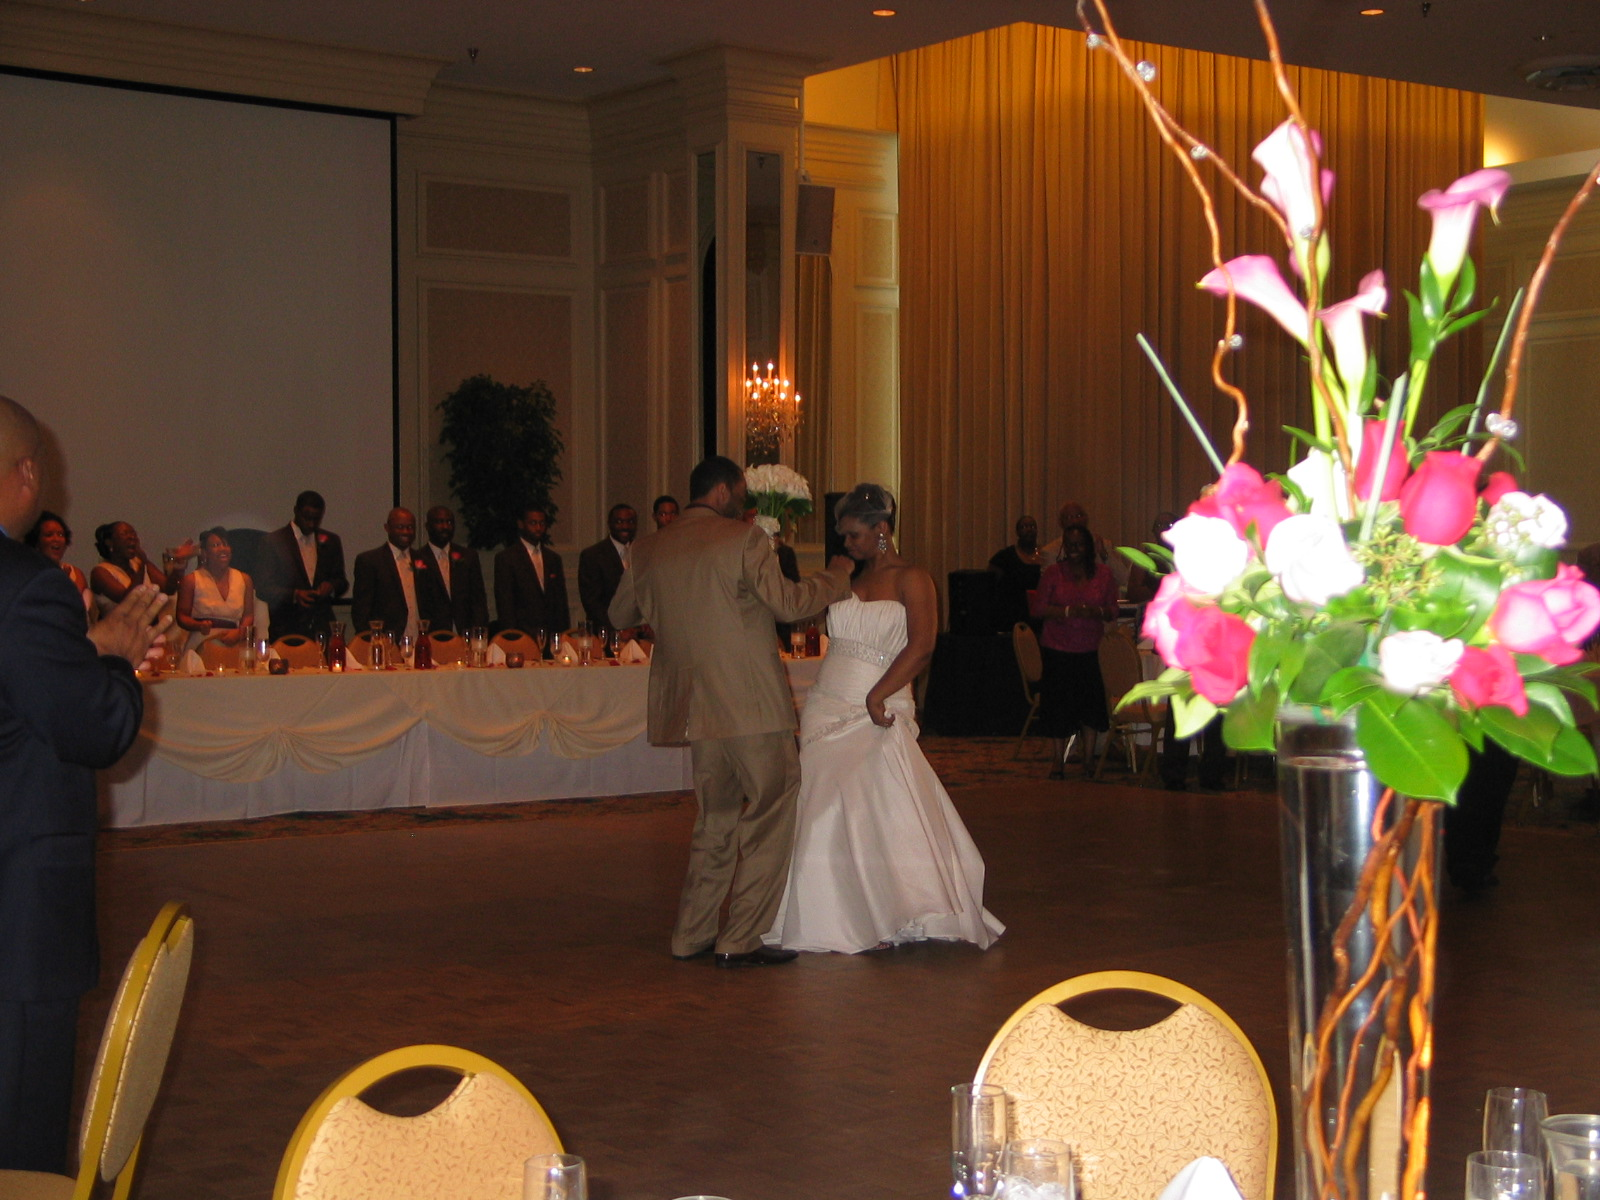 Fete By Design - The Empire Room Wedding - Jada + Earl's First Dance